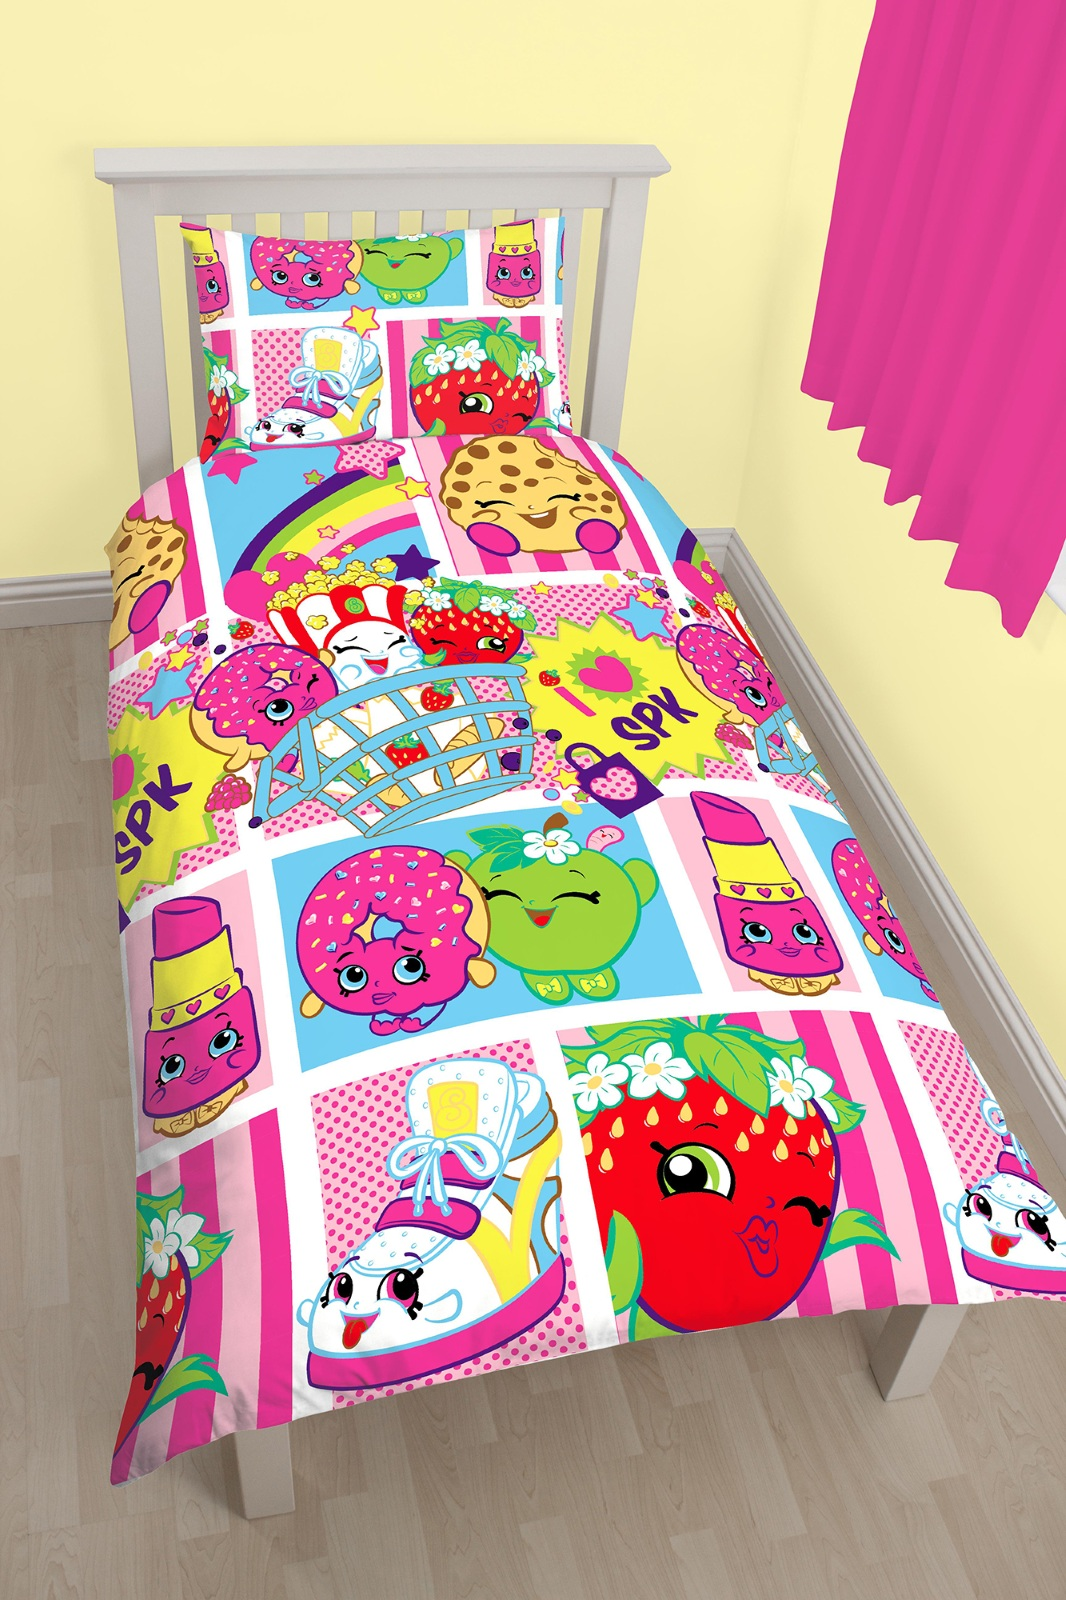 NEW SHOPKINS SHOPAHOLIC SINGLE DUVET QUILT COVER SET GIRLS